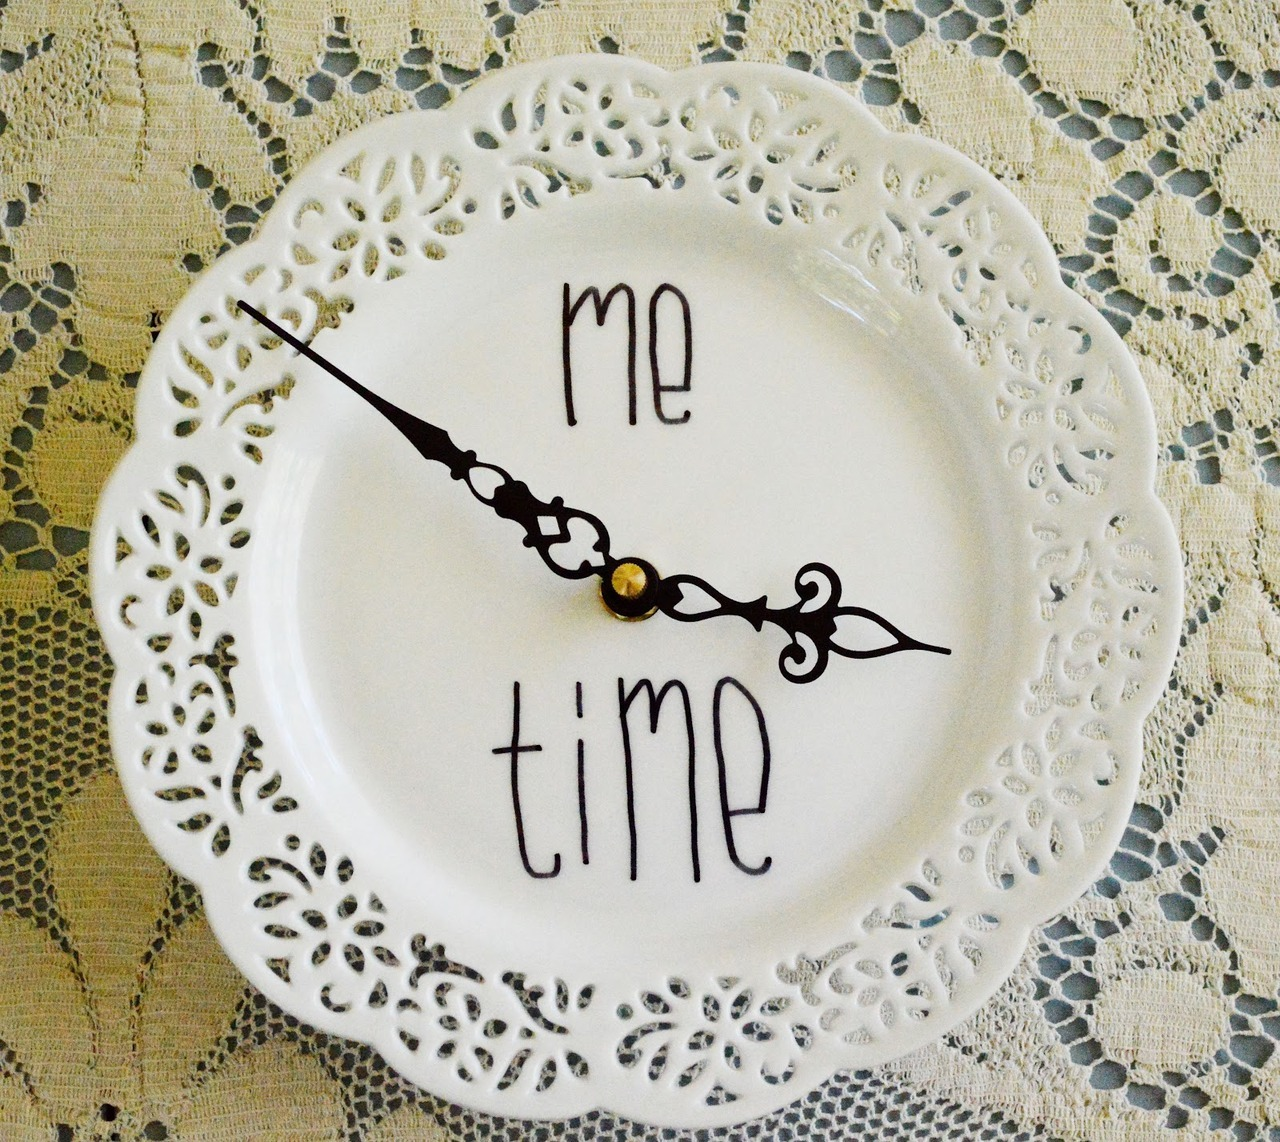 Doily Plate Clock source here via:  aboxofdesigns